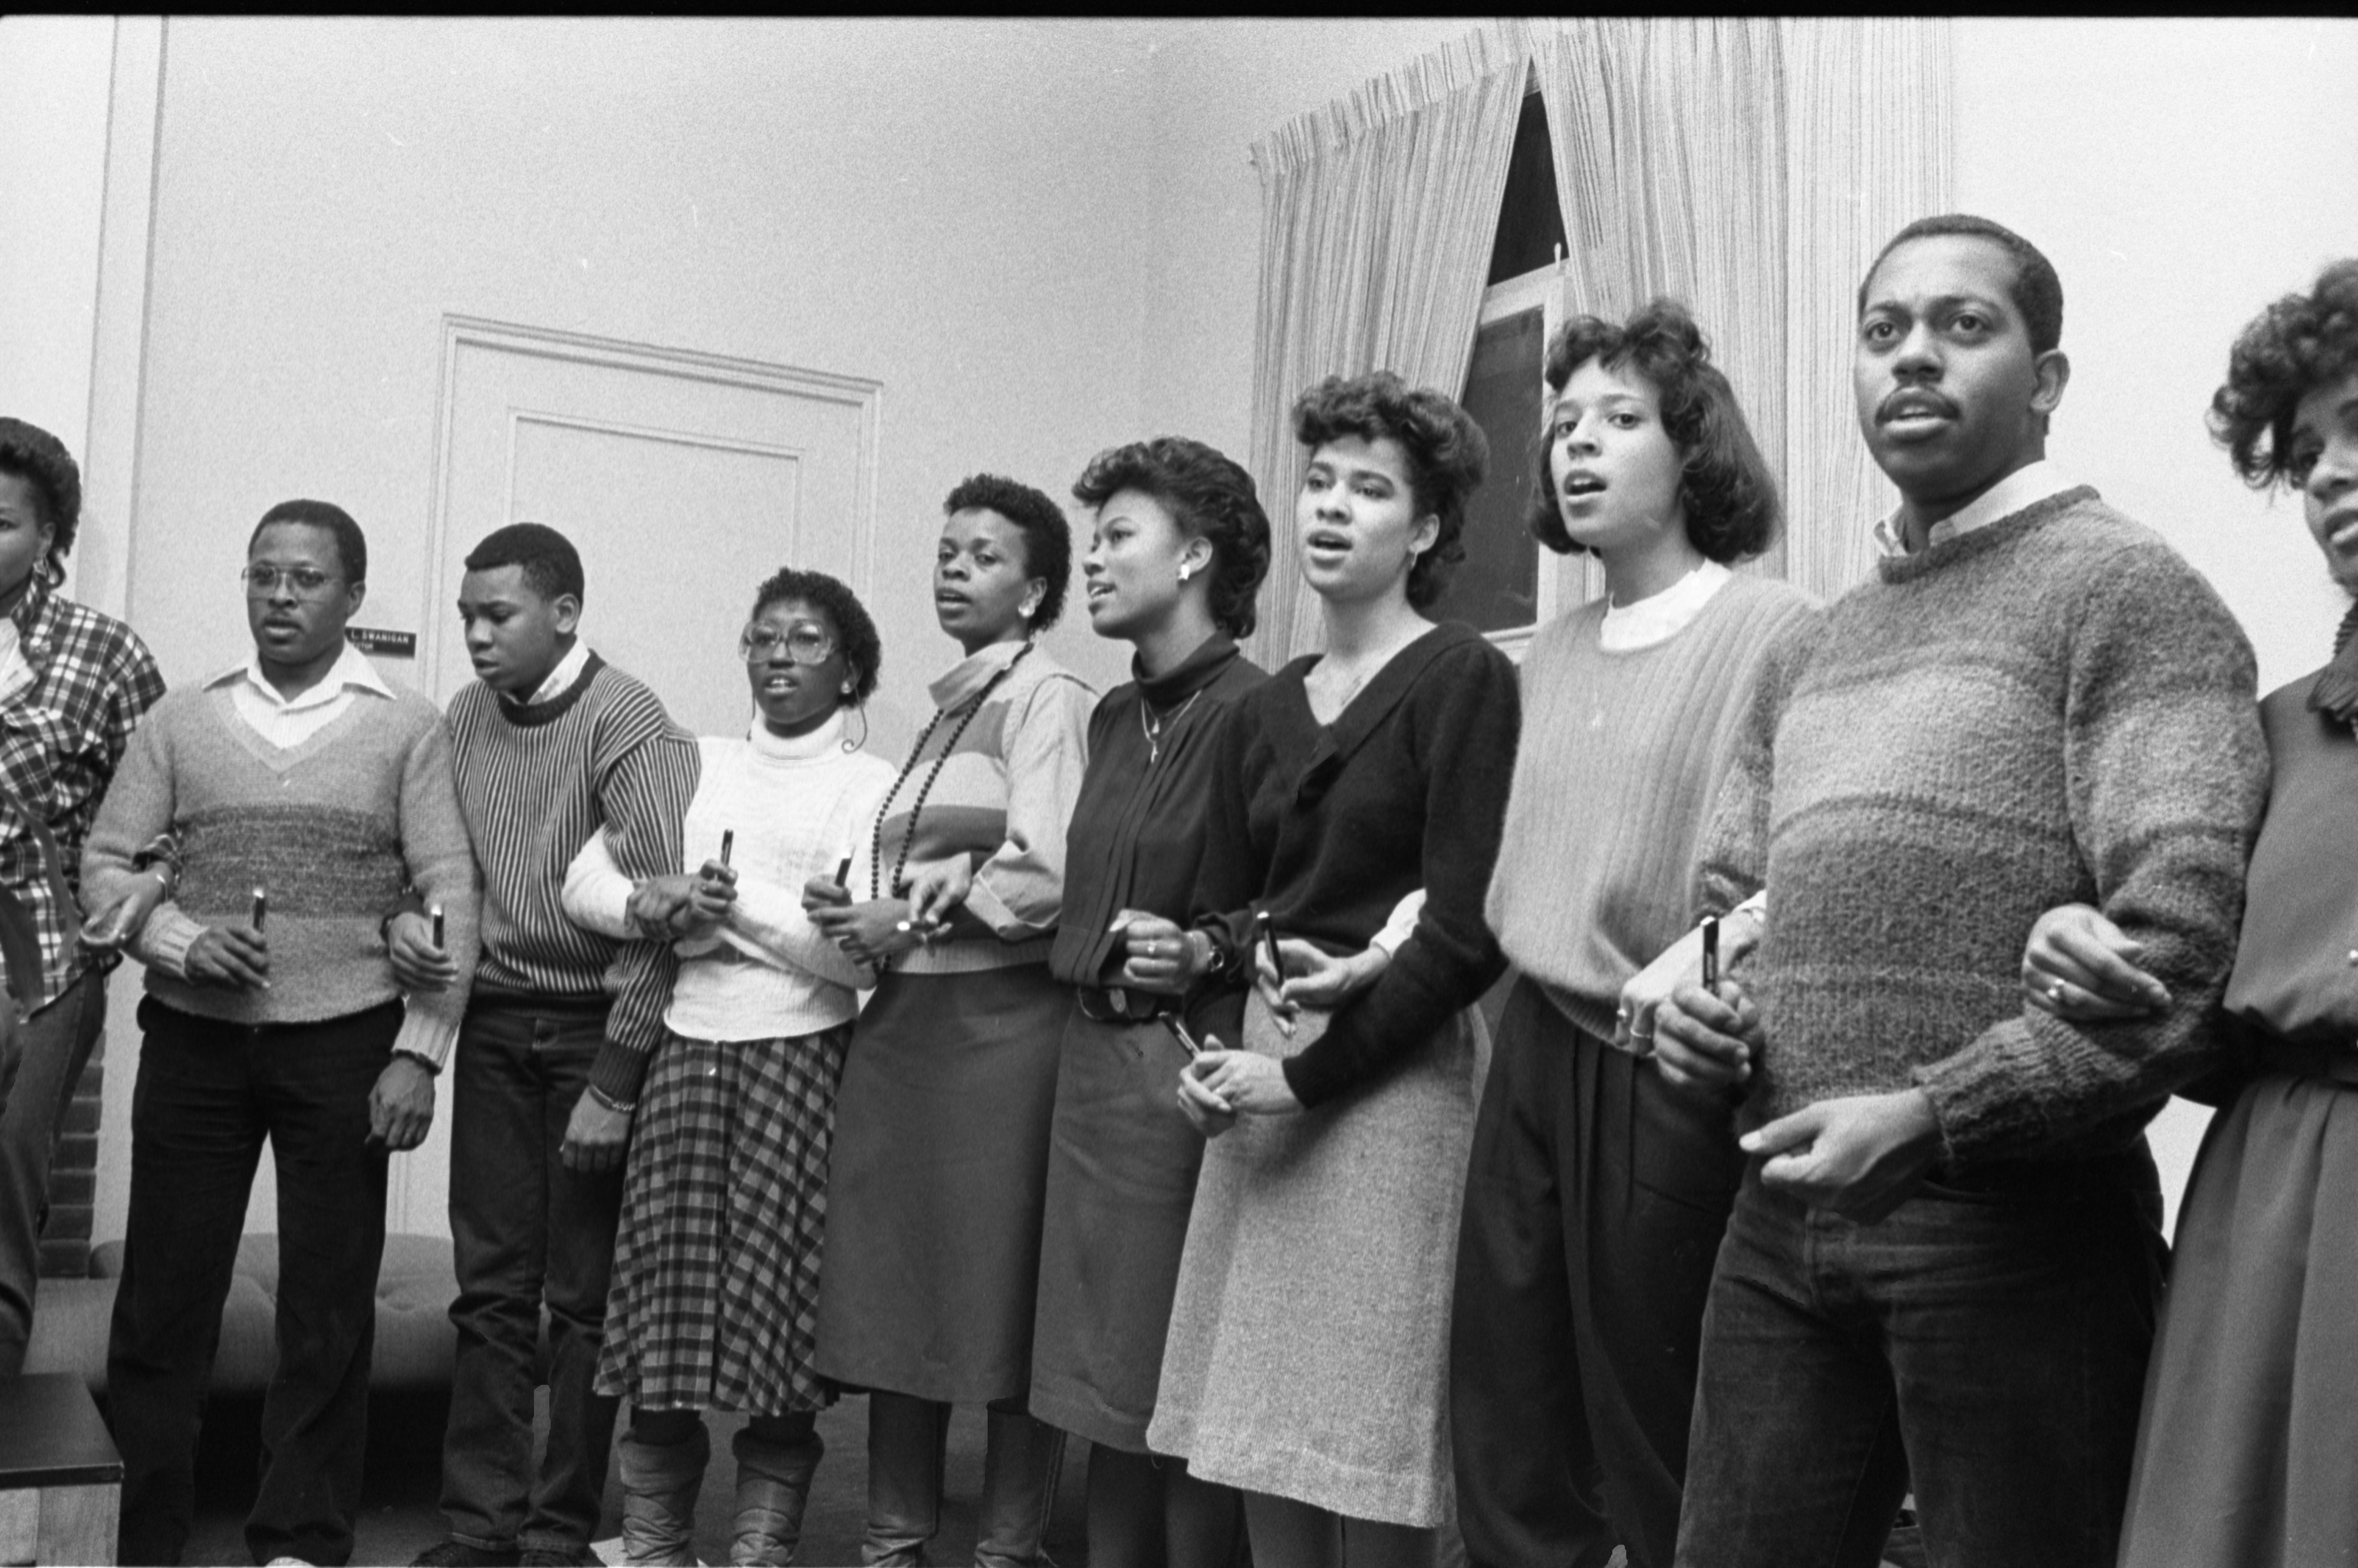 Participants Sing Together At The Martin Luther King Jr Memoriam At Trotter House, January 18, 1986 image